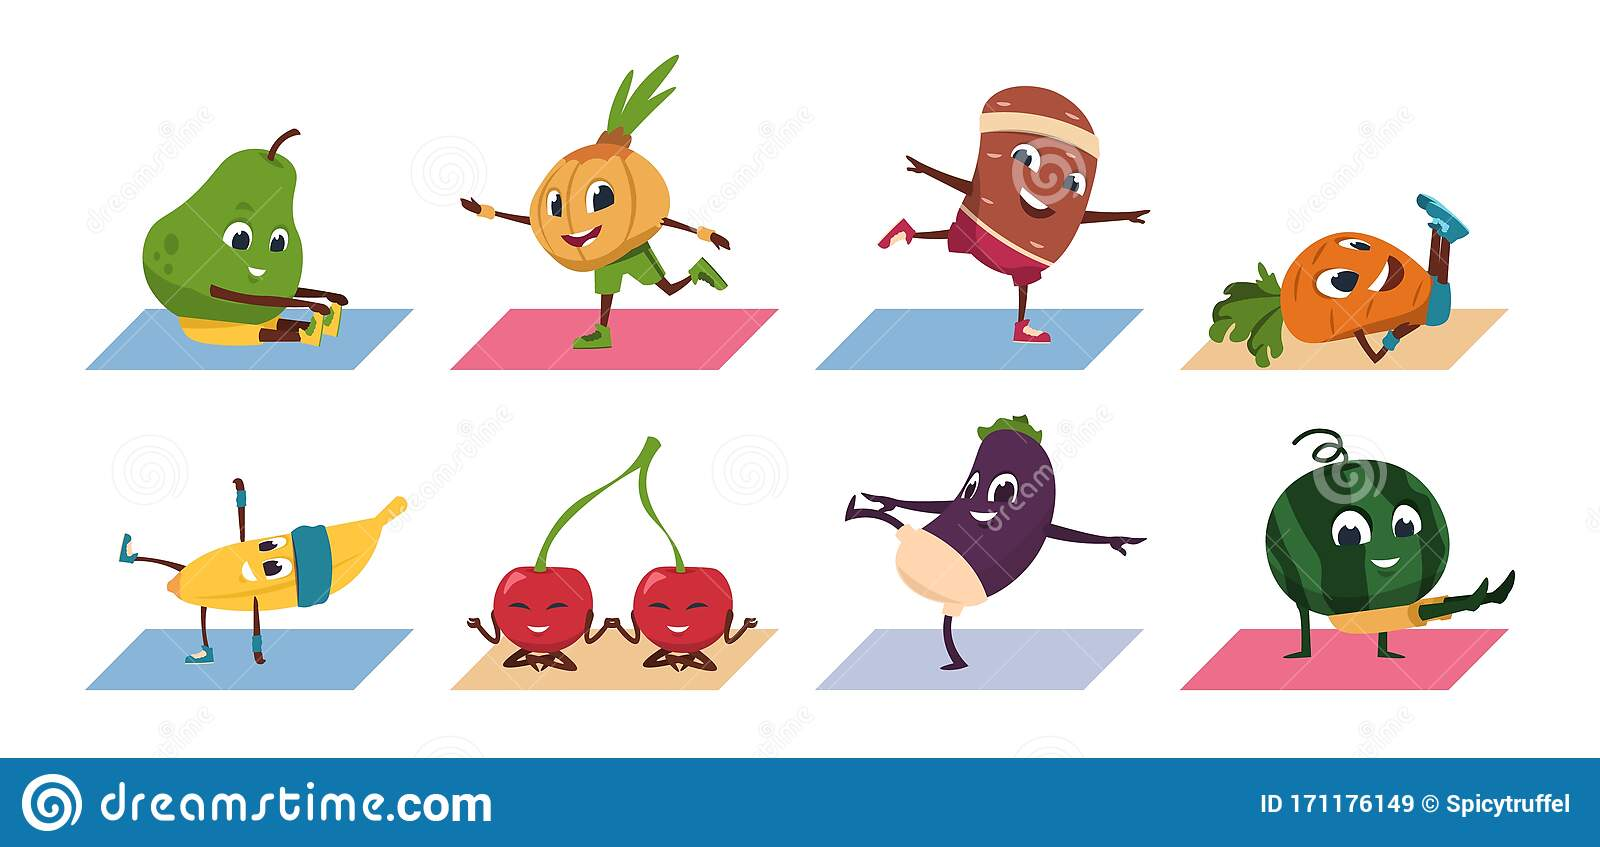 Fruit Yoga Cartoon Vegetable Funny Characters Doing Yoga Poses And Sport Exercises Healthy Food And Fitness Workout Stock Vector Illustration Of Illustrations Characters 171176149